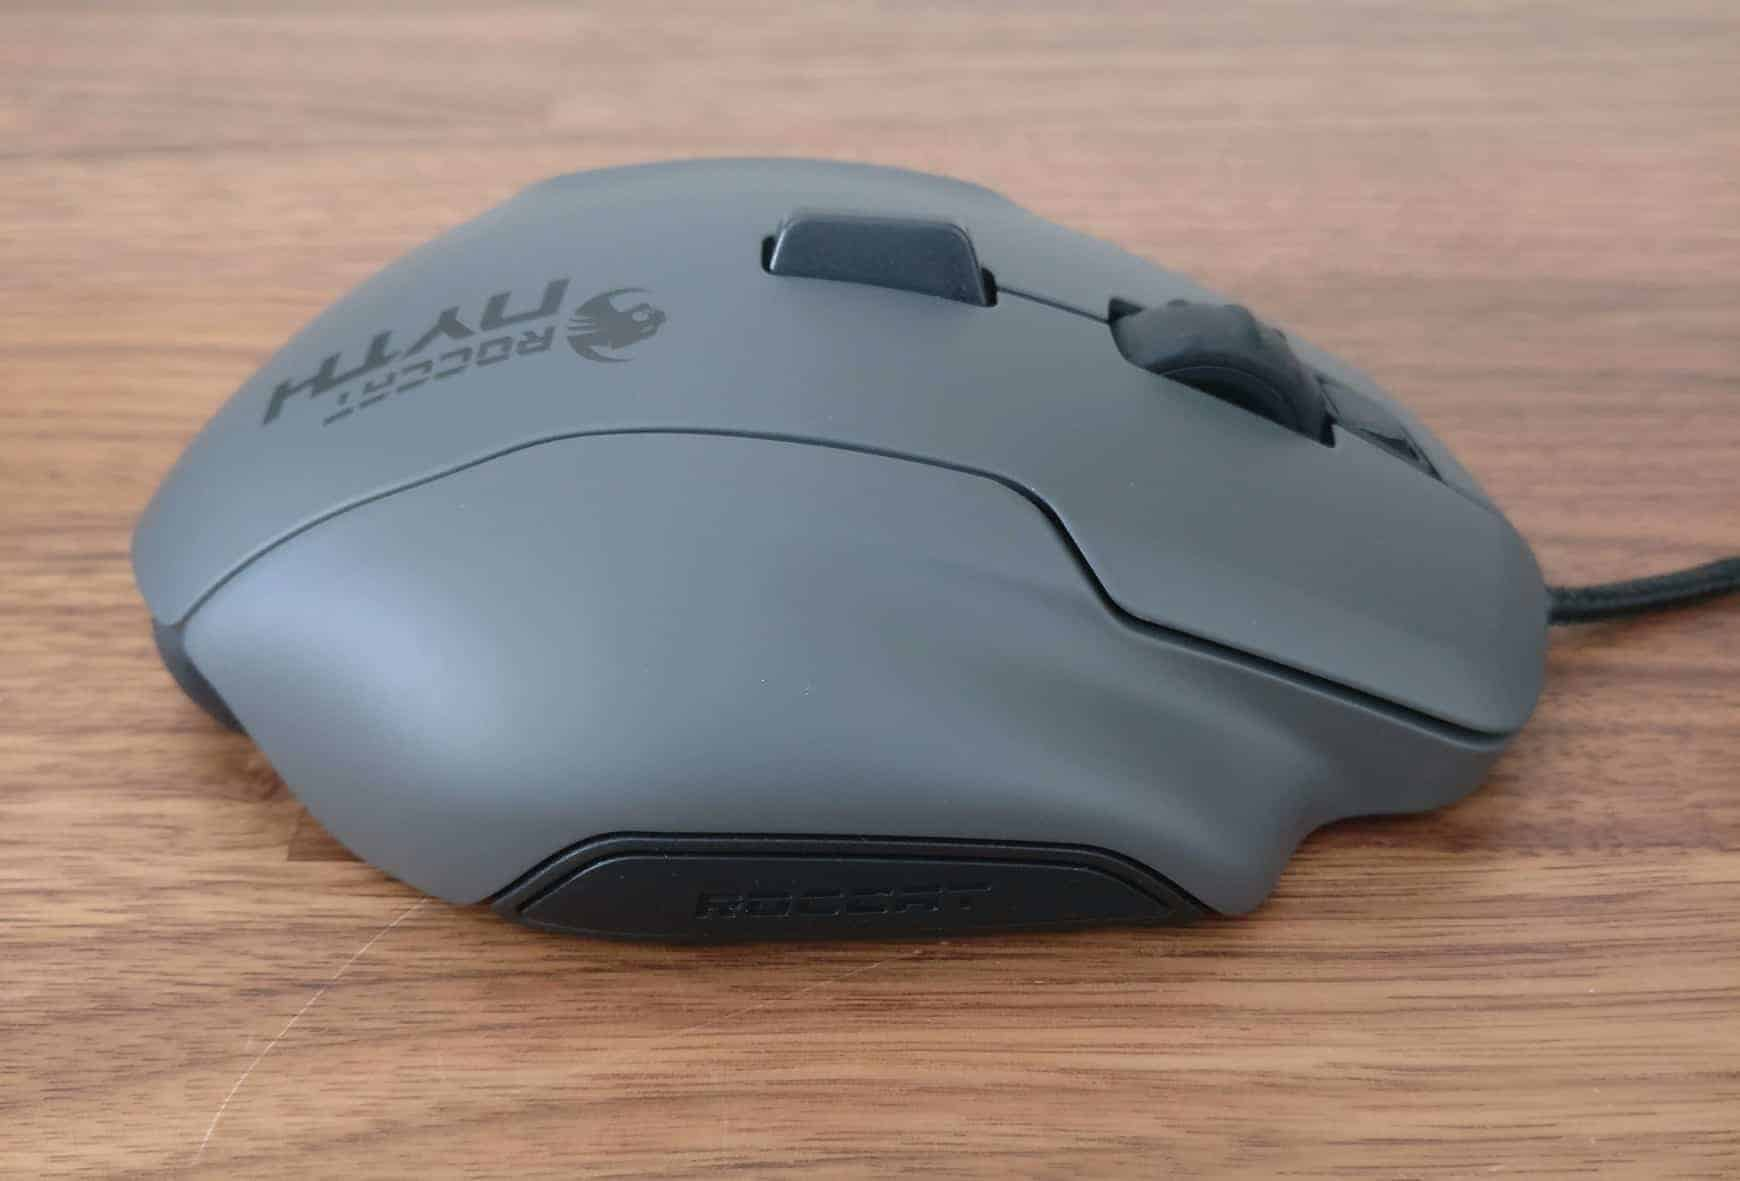 Roccat-Nyth-Photos37 Roccat Nyth Gaming Mouse Review